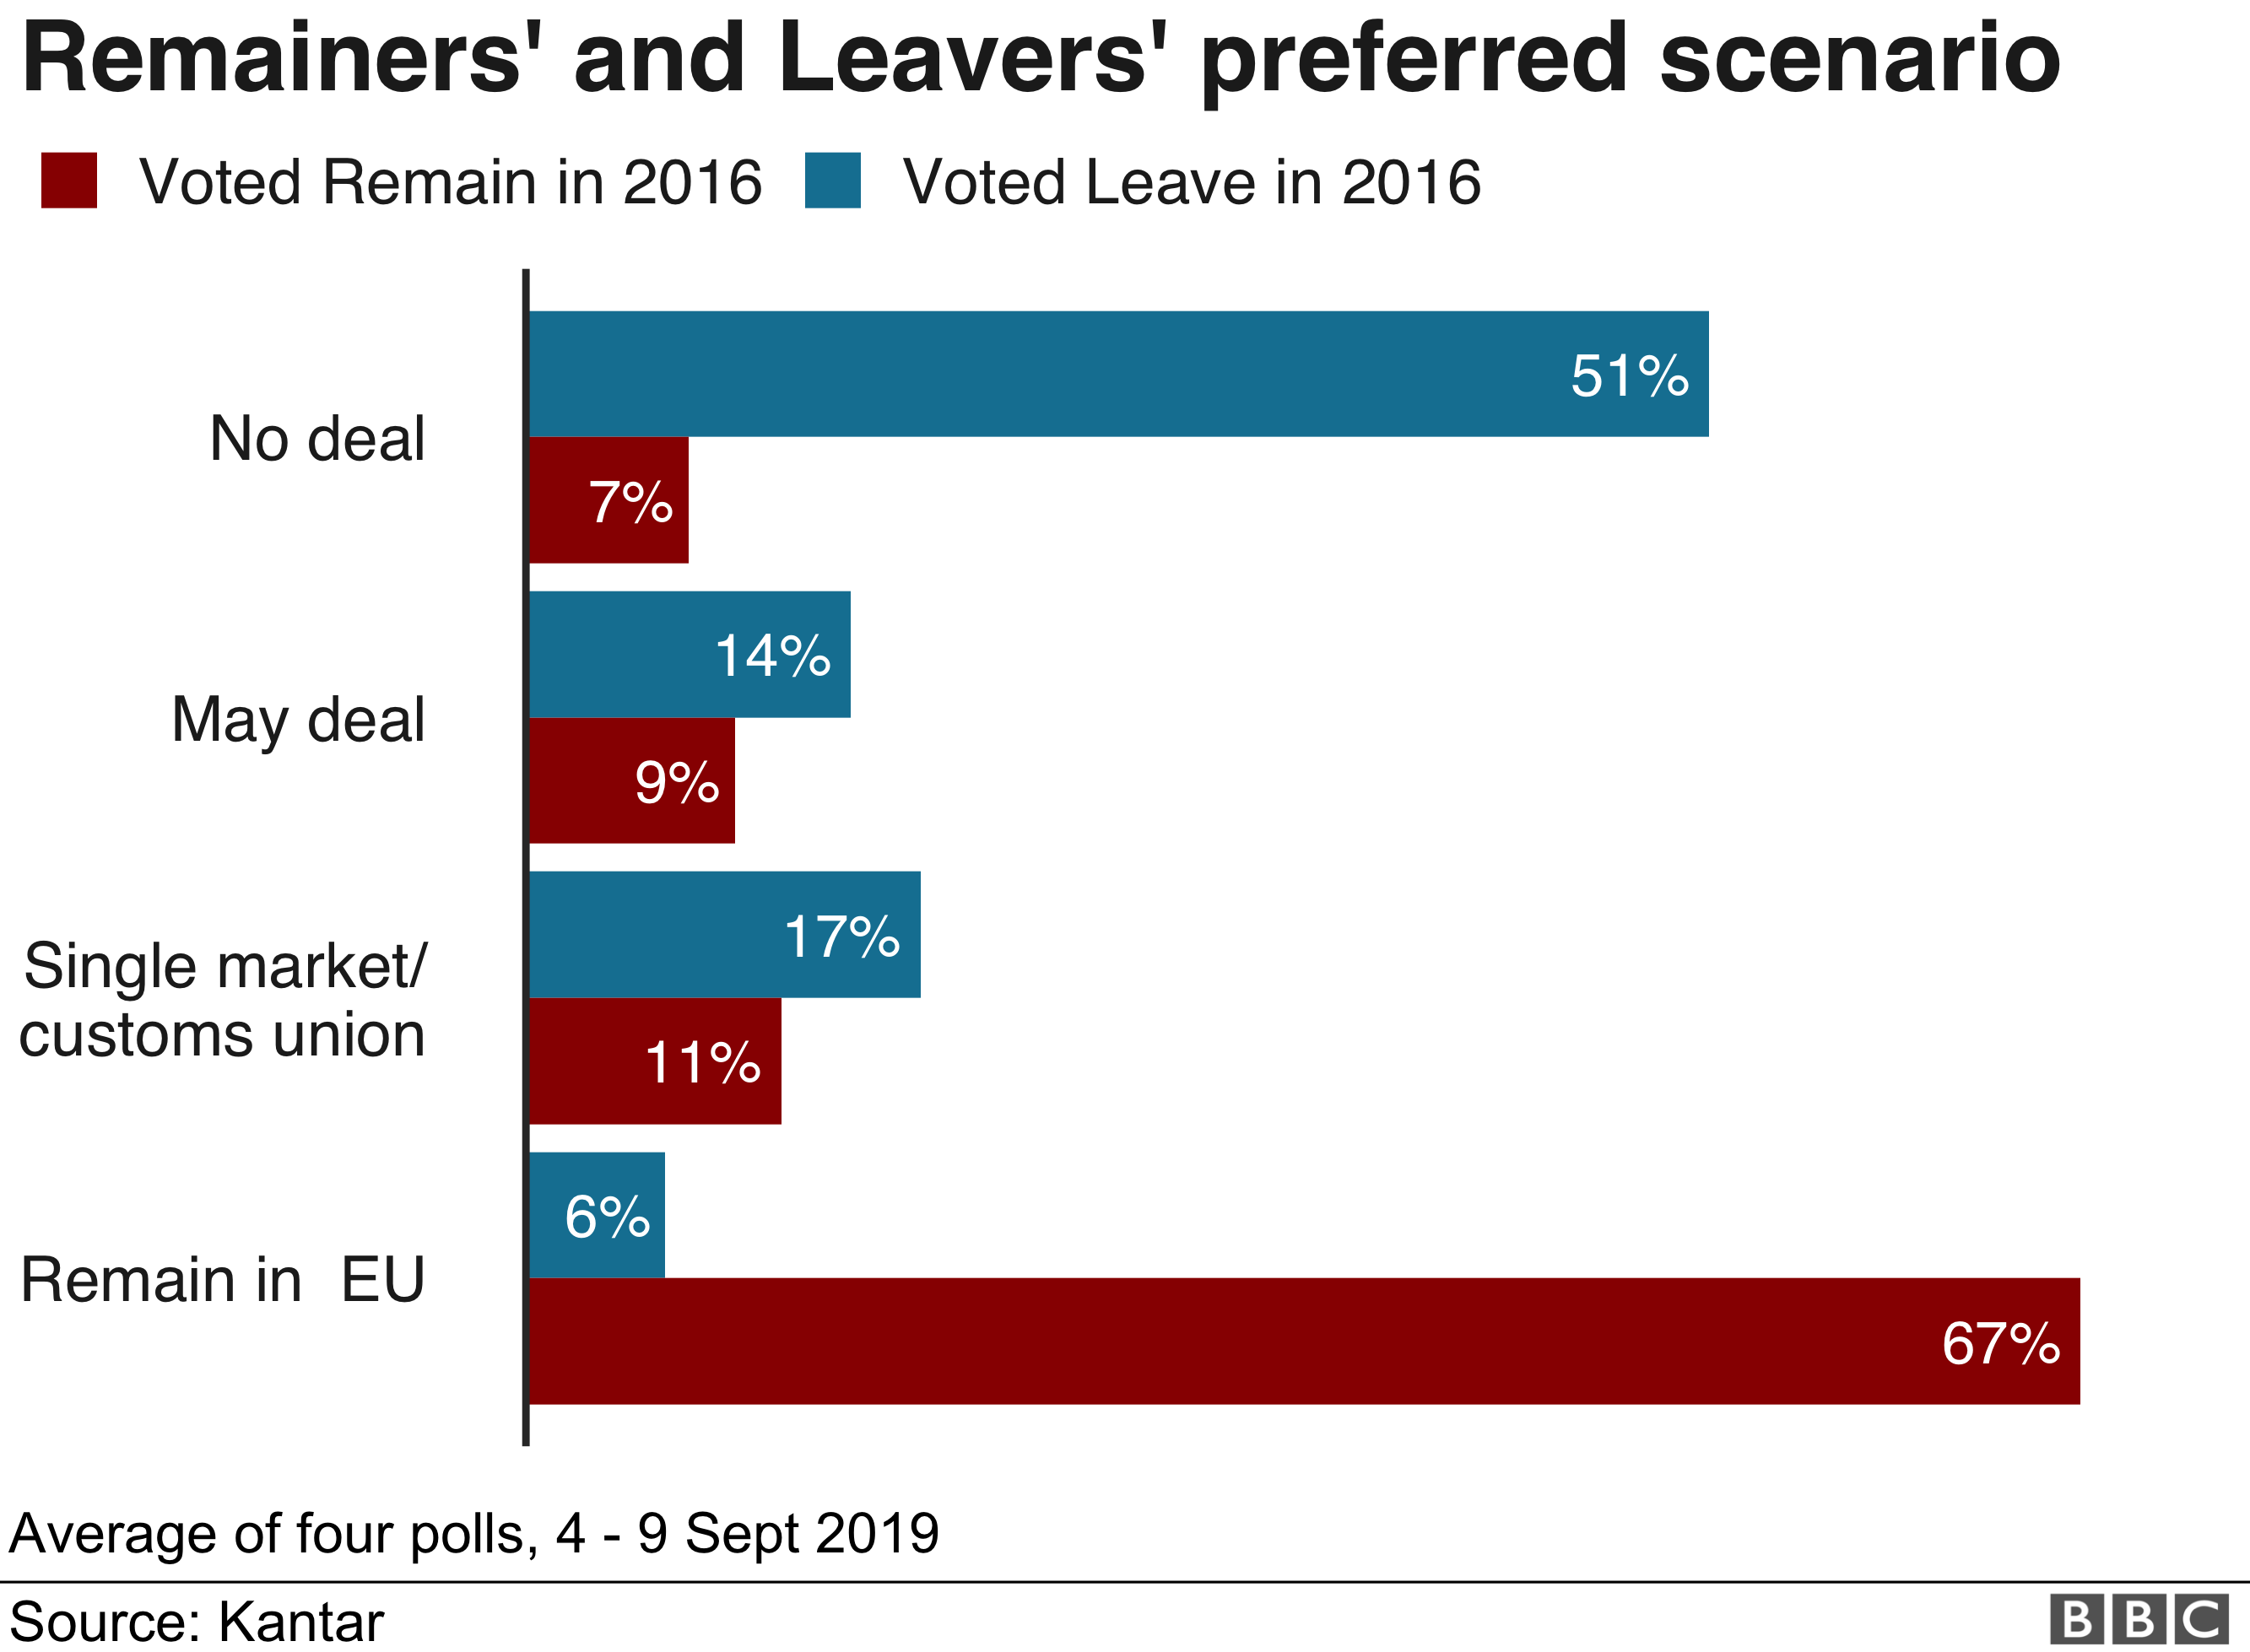 Remainers' and Leavers' preferred scenario